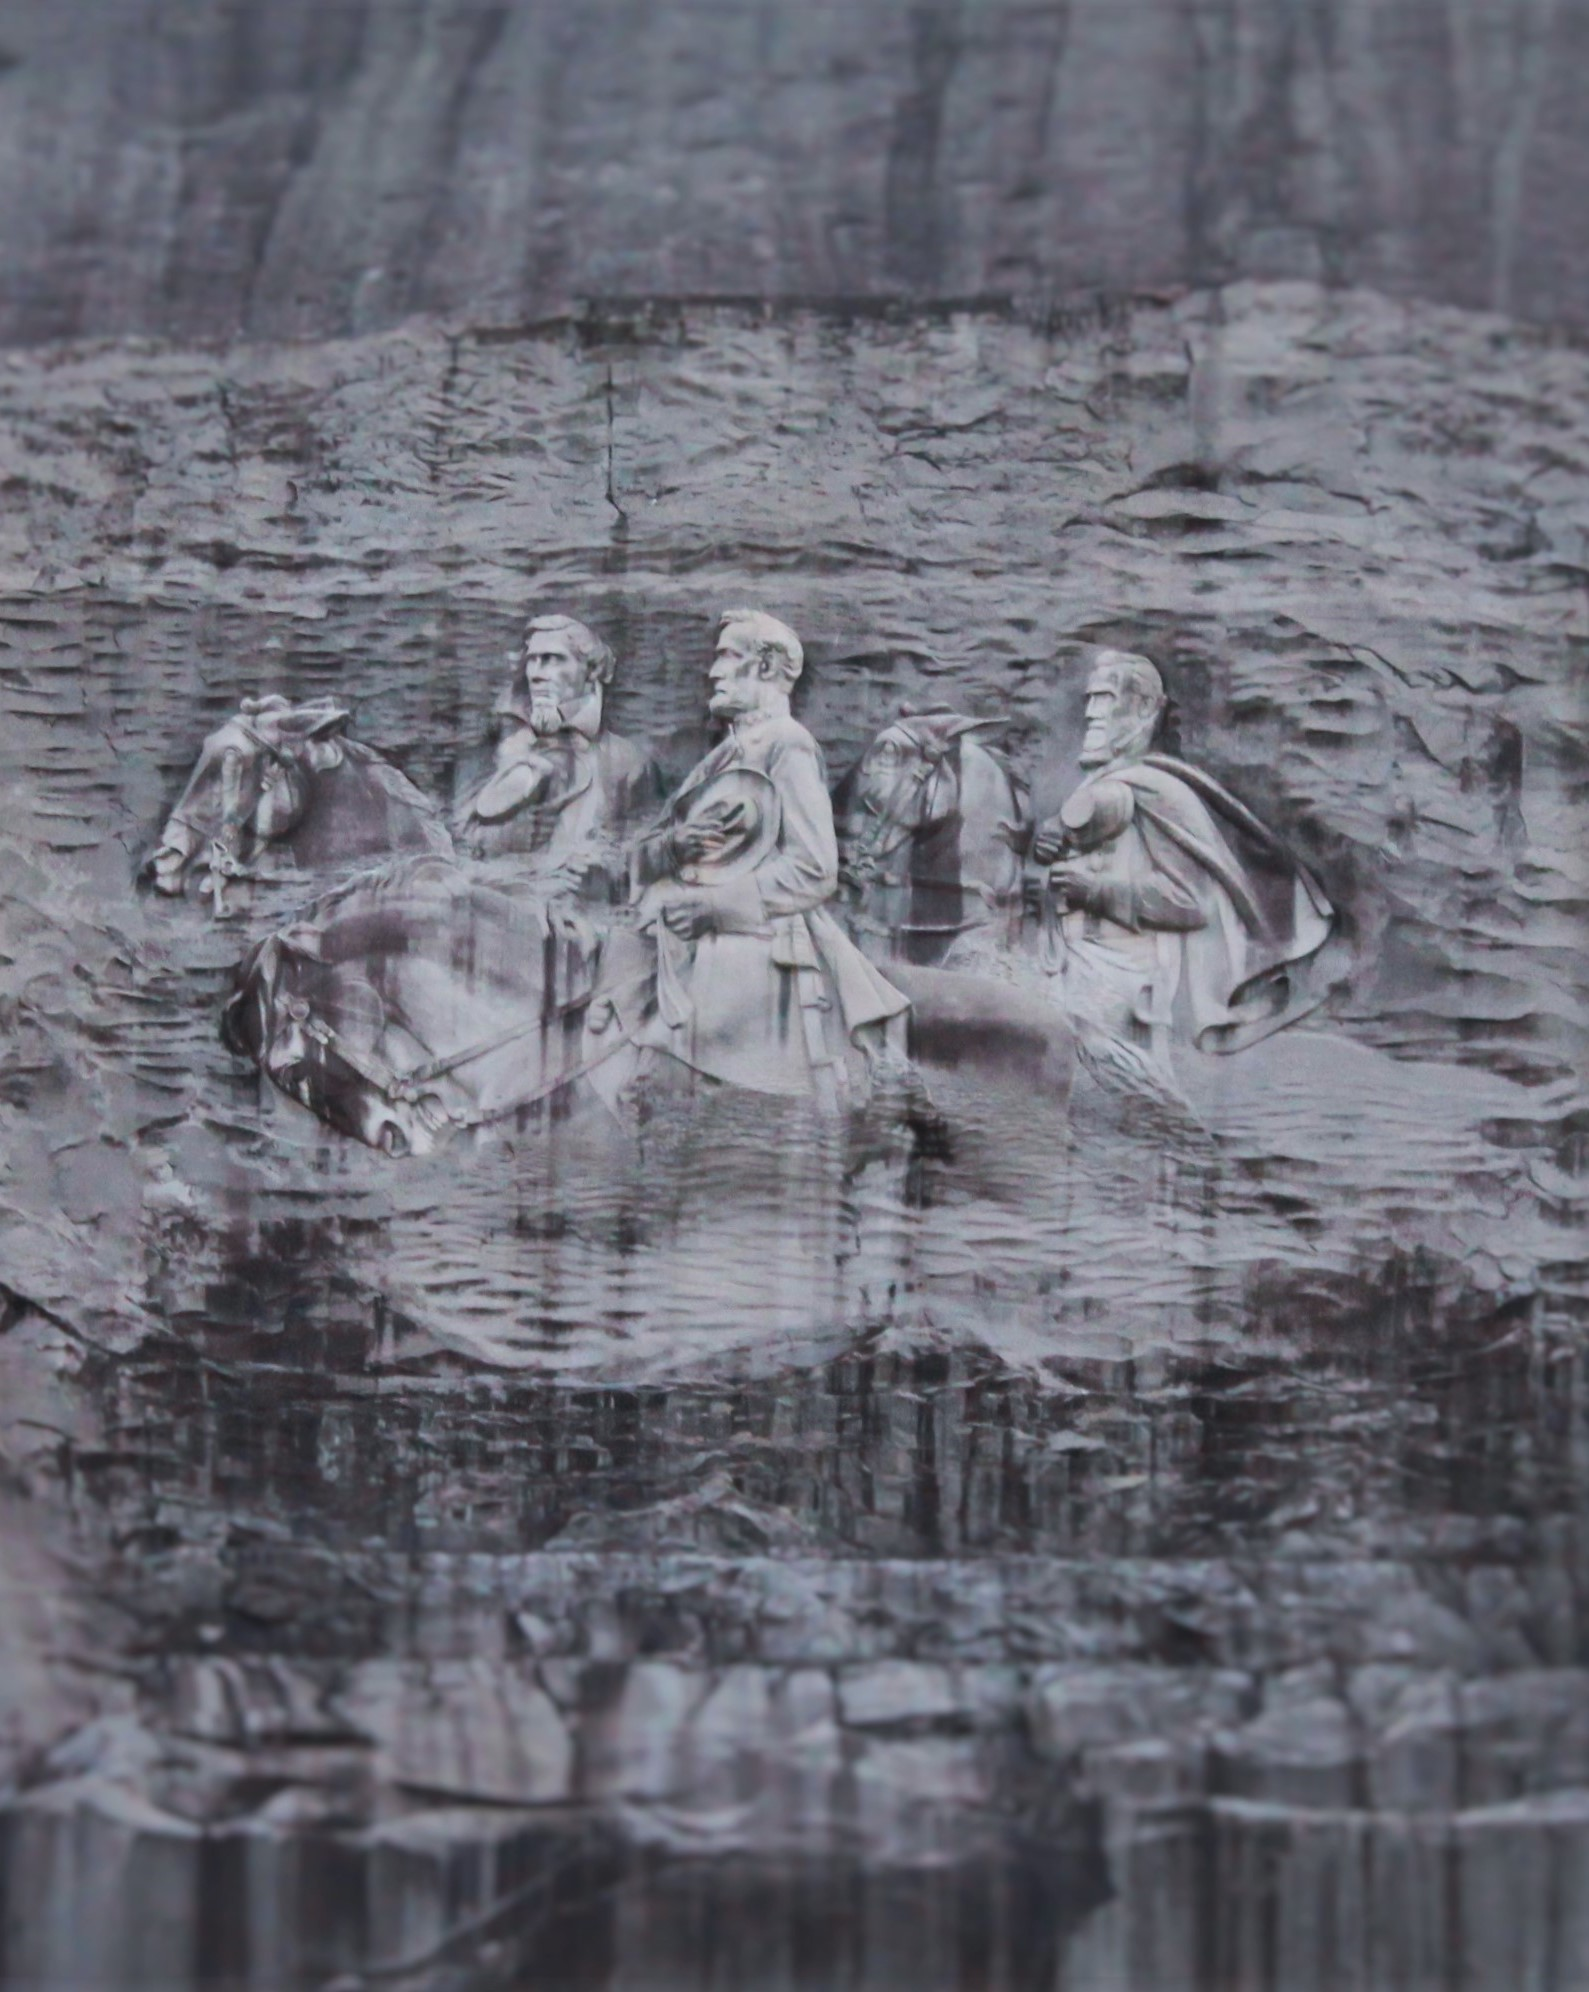 Naacp requests changes to confederate themes at stone mountain